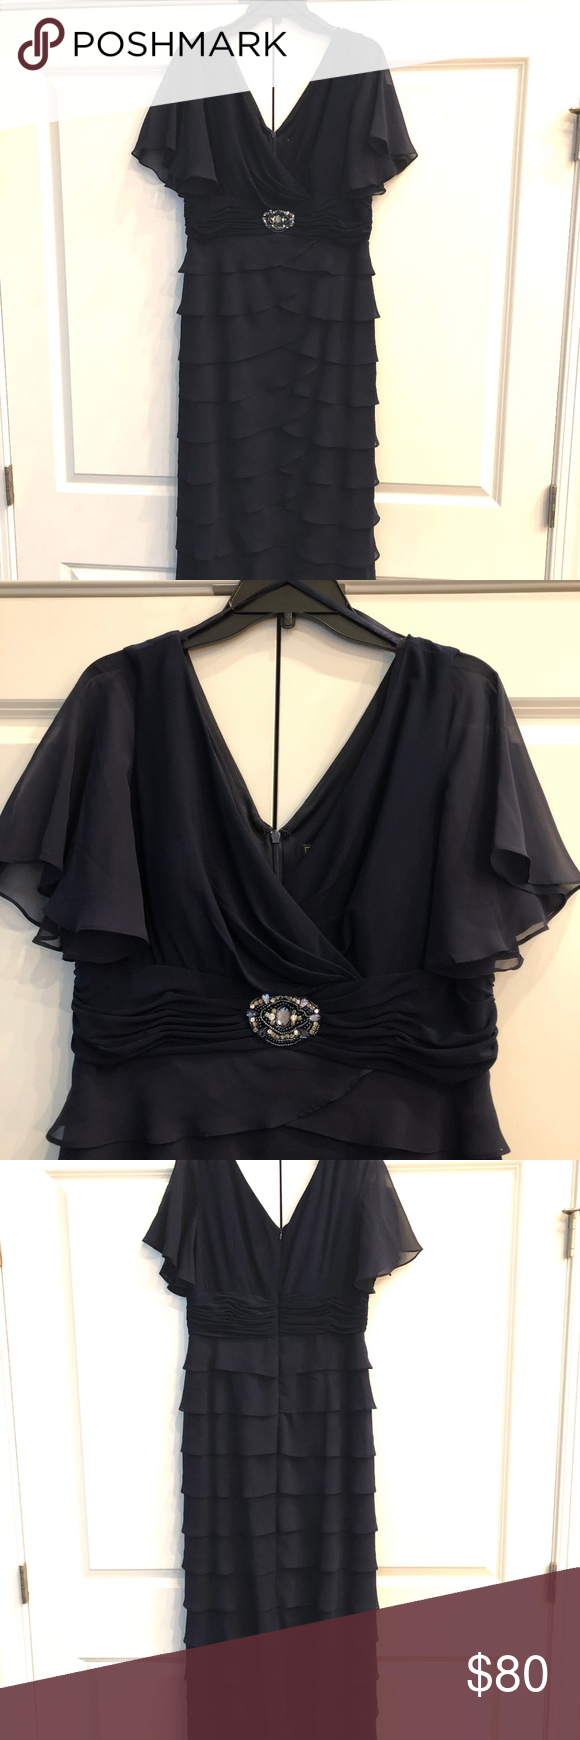 fa06cc64cc9 Jessica Howard Mother of Bride Dress This dress is perfect for the mother  of the bride or groom. Or wear it to your next special occasion! Navy blue.